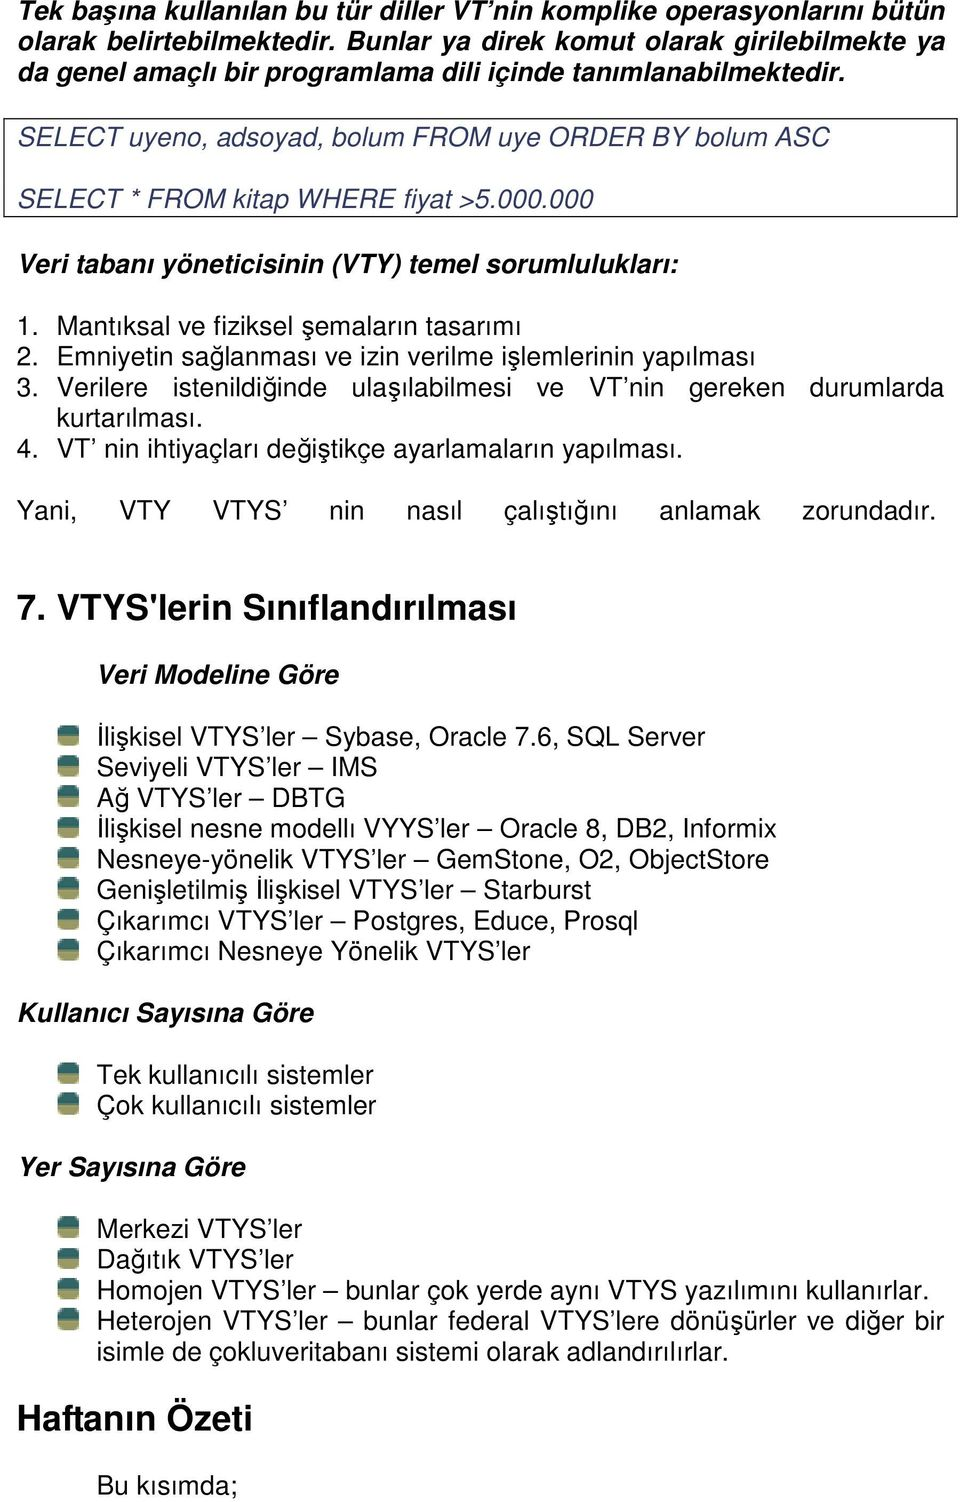 SELECT uyeno, adsoyad, bolum FROM uye ORDER BY bolum ASC SELECT * FROM kitap WHERE fiyat >5.000.000 Veri tabanı yöneticisinin (VTY) temel sorumlulukları: 1. Mantıksal ve fiziksel şemaların tasarımı 2.